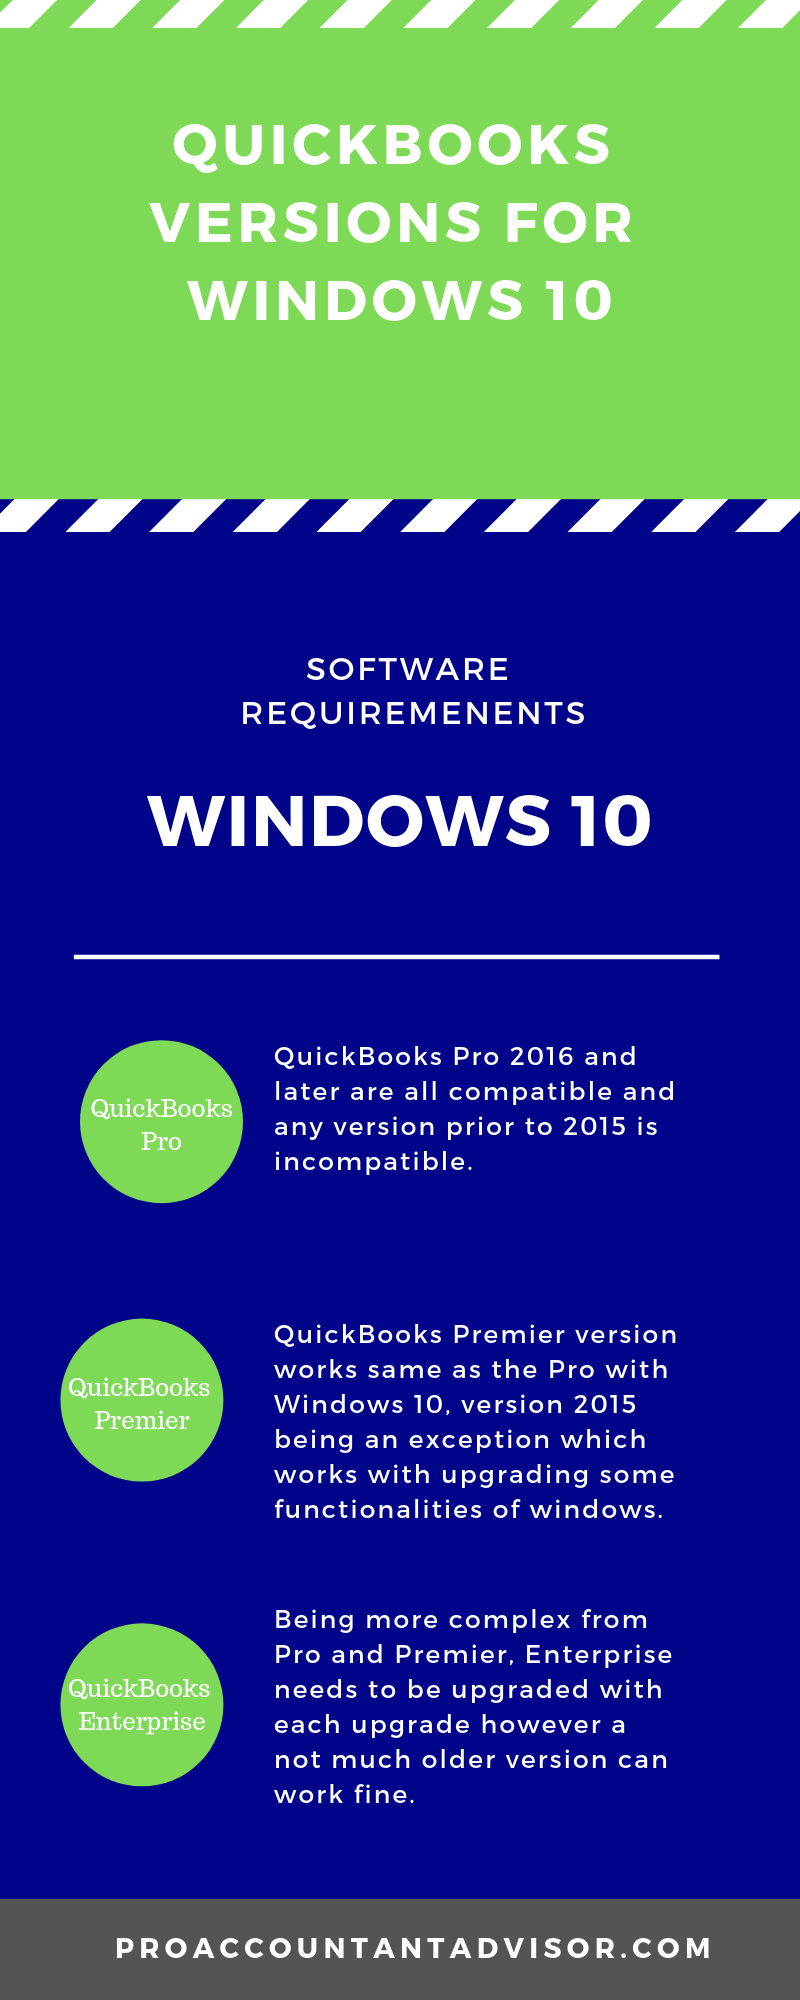 What Versions of QuickBooks Desktop are Supported on Windows